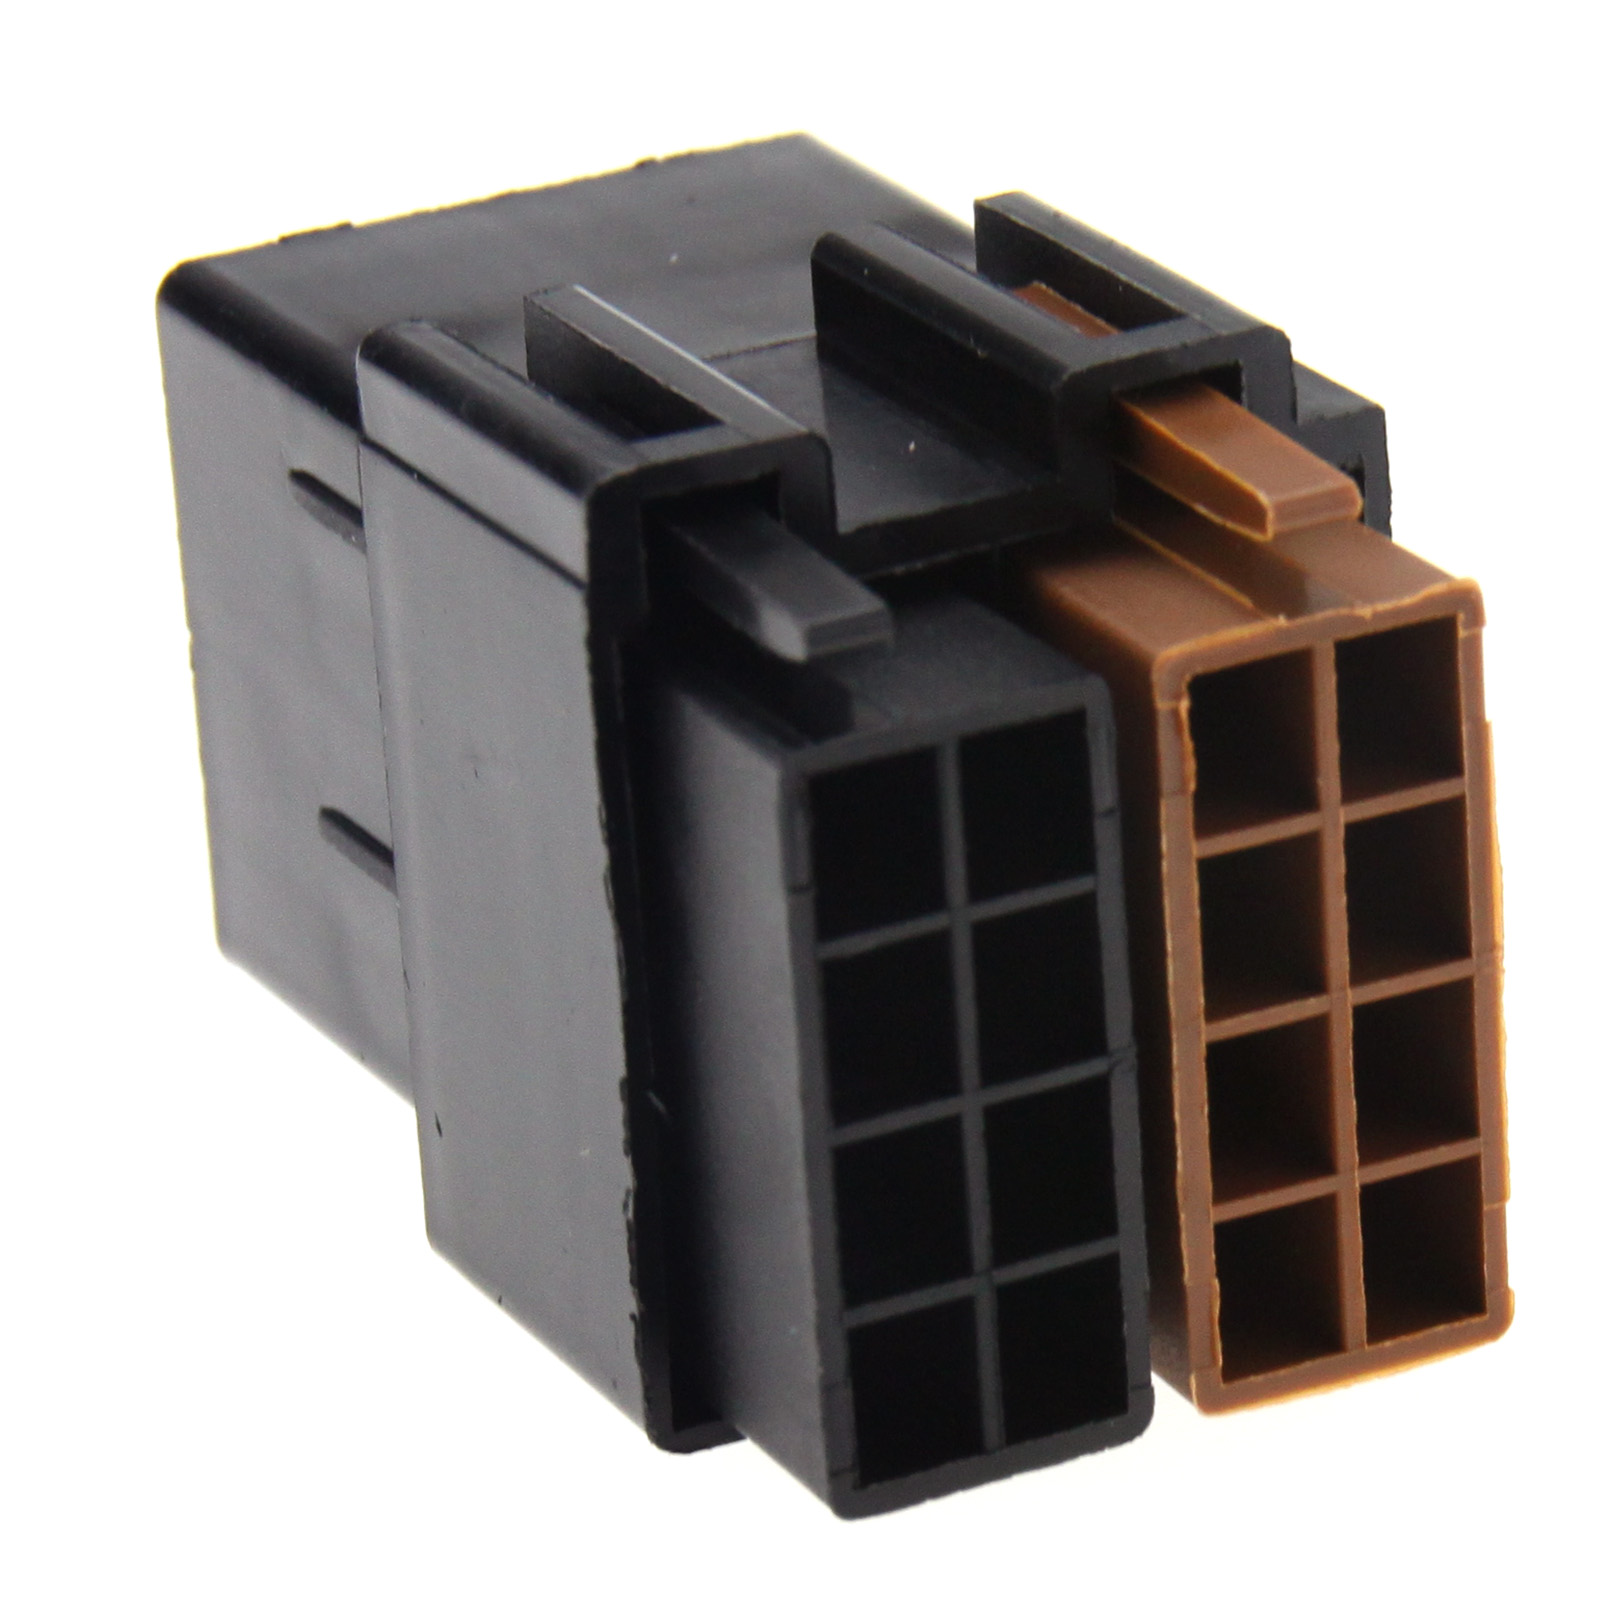 2 X Iso 8 Pin Female Car Stereo Brass Terminal Block Socket Connector Wiring Regulations Loom